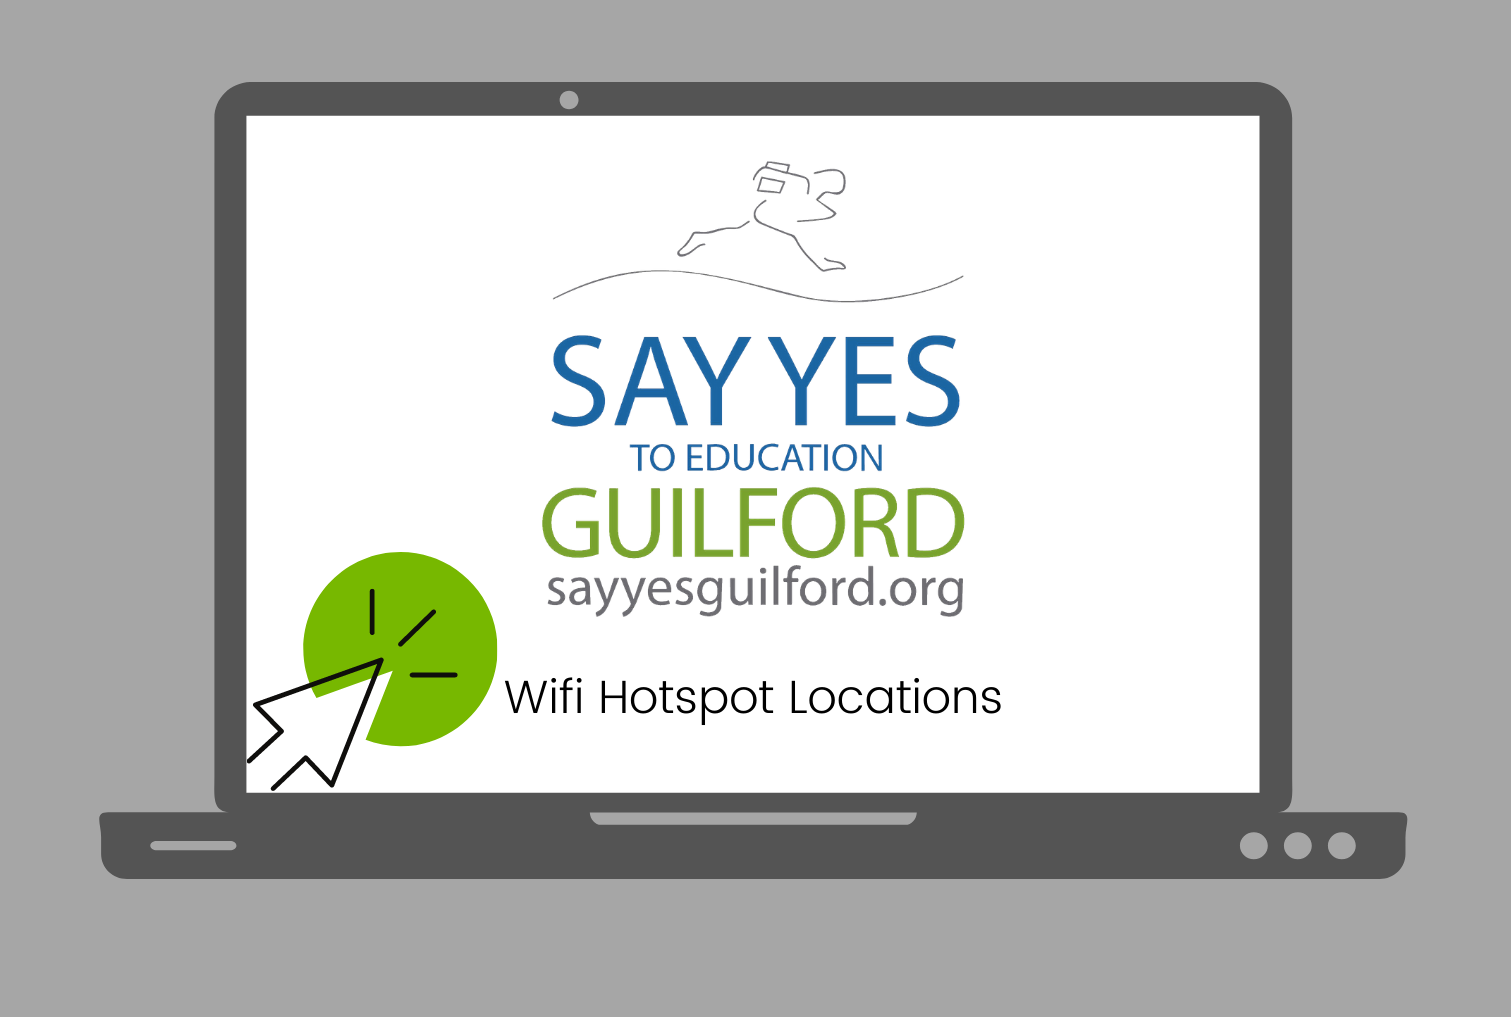 Say Yes Wifi Hotspot Locations